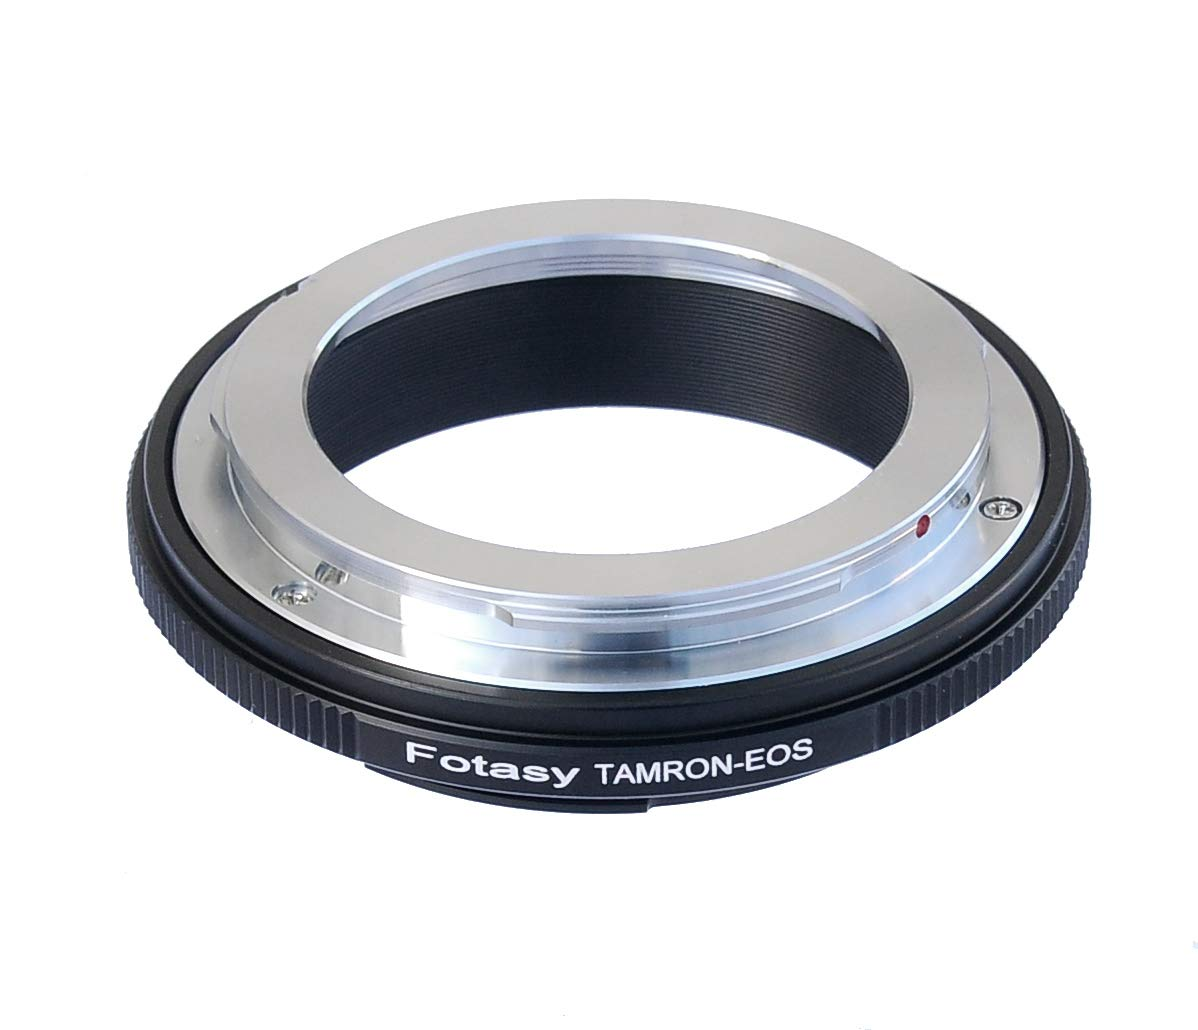 FD to Canon Adapter Fotasy Canon FD Lens to Canon Adapter Compatible with Canon DSLR 5D IV III II 1Ds 1D Series 7D II 7D 80D 70D 60D 50D 1300D 1200D 1100D 1000D 760D 750D 700D 650D Infinity Focus